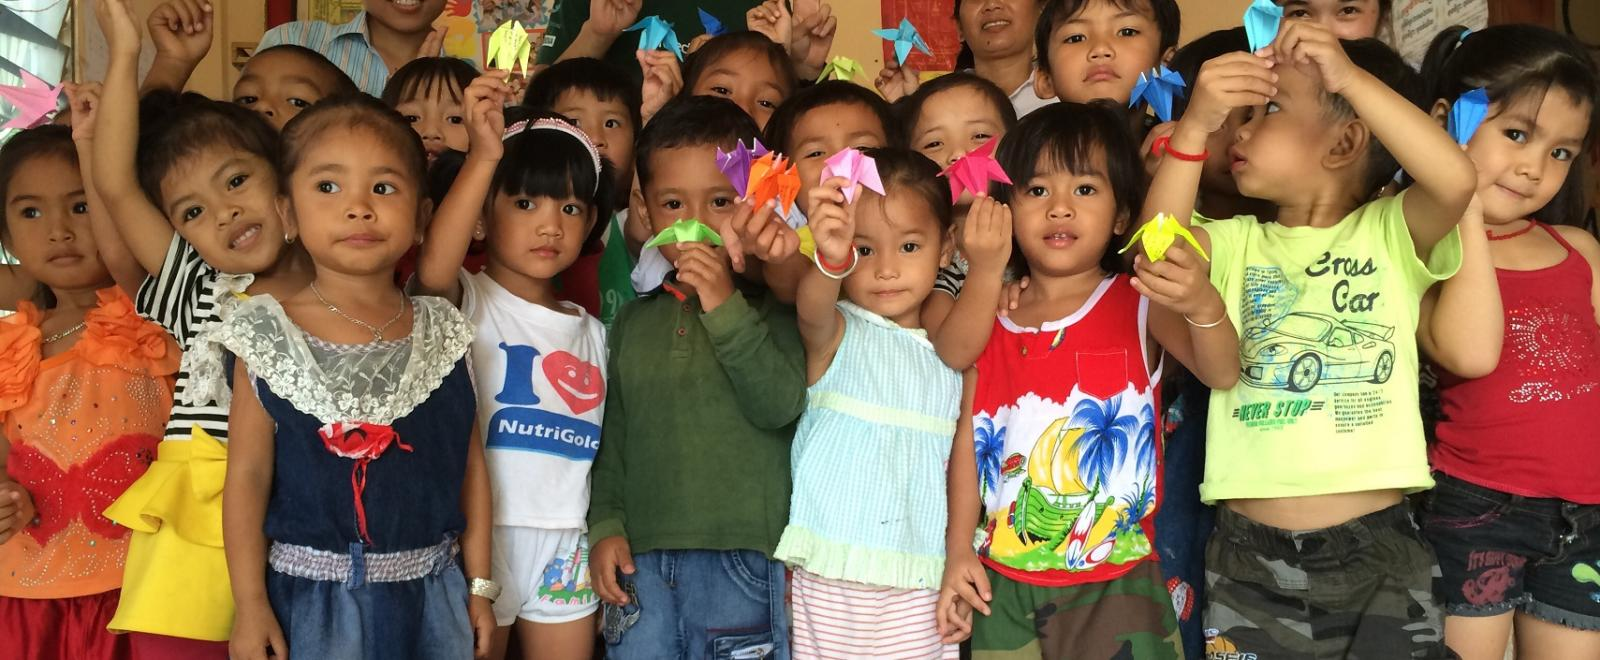 Projects Abroad volunteers pose with children on the Cambodia Childcare Project